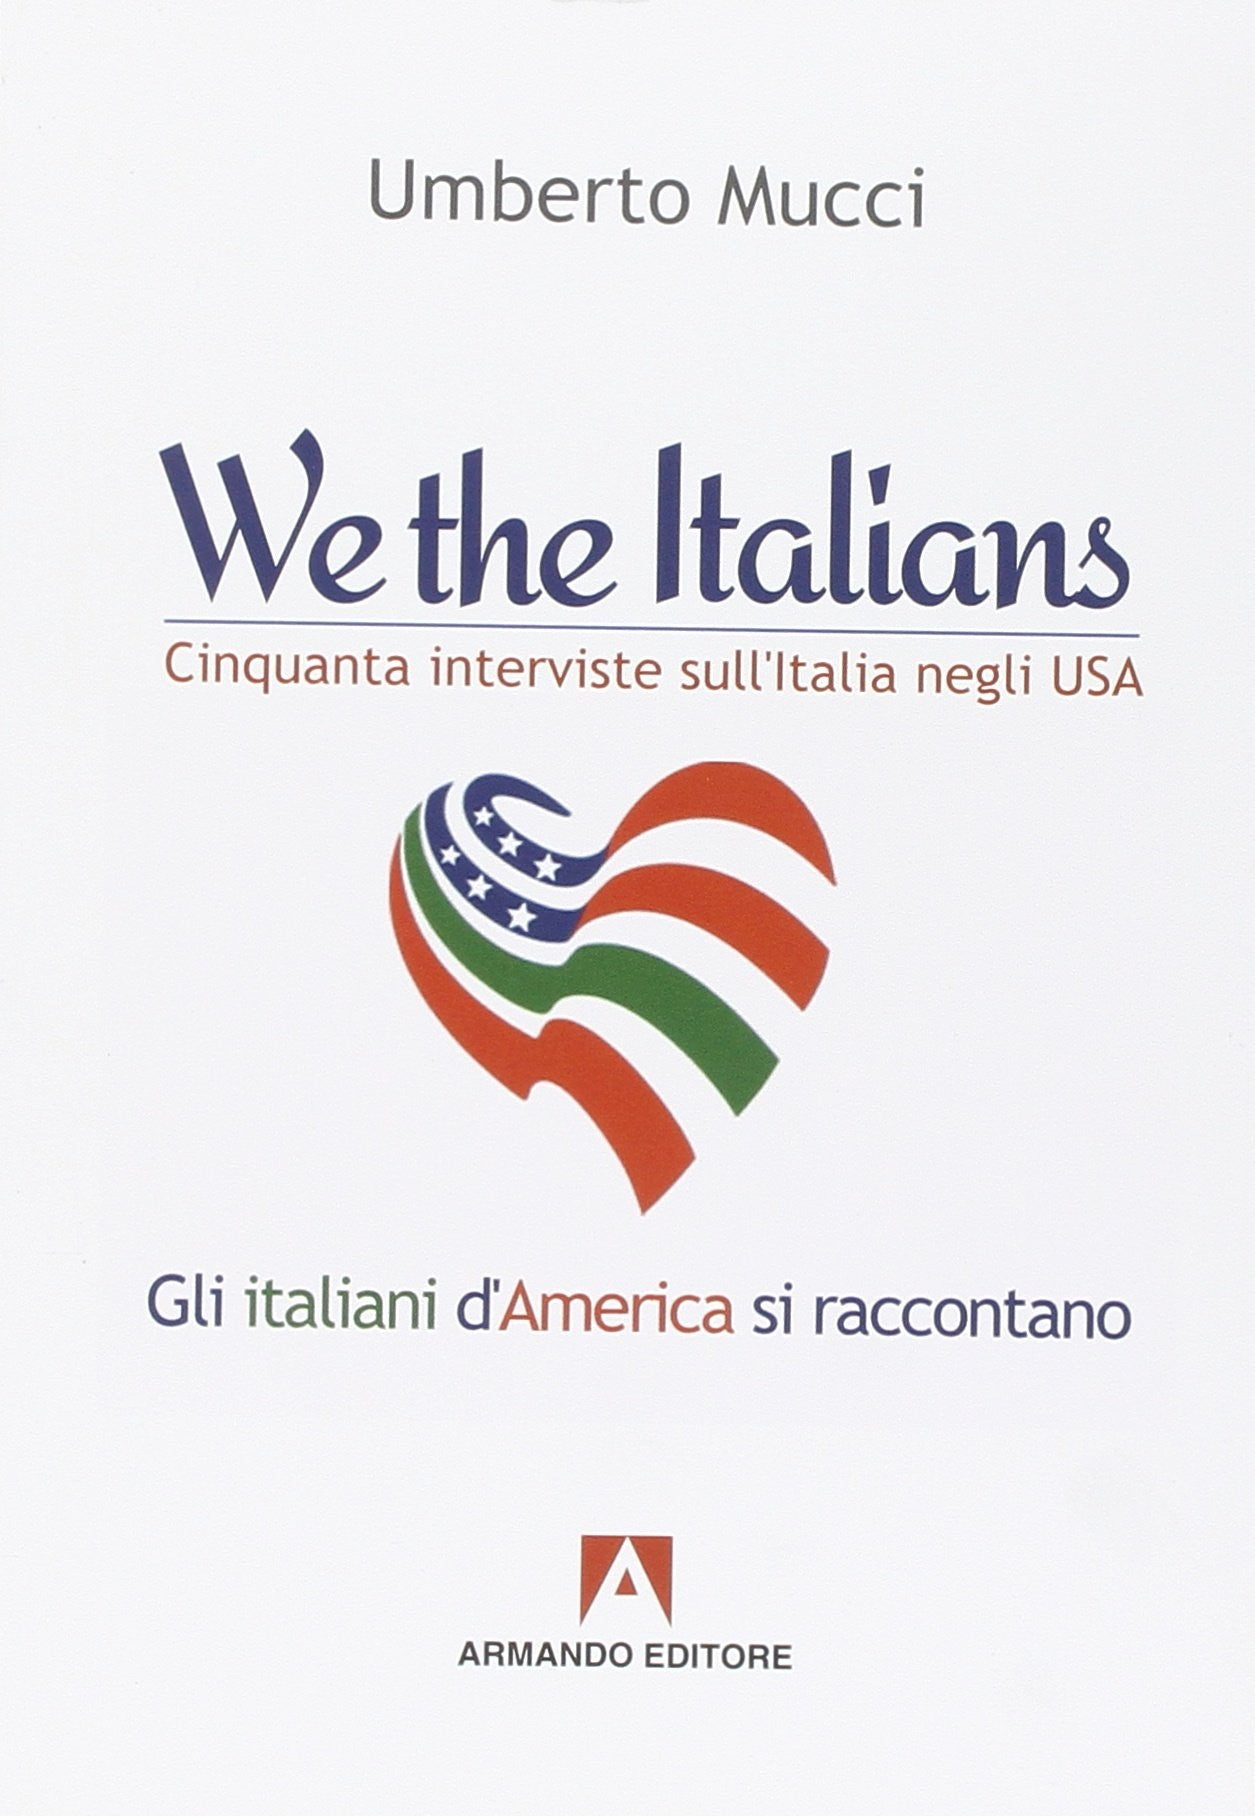 We the italians. Cinquanta interviste sull'Italia negli USA